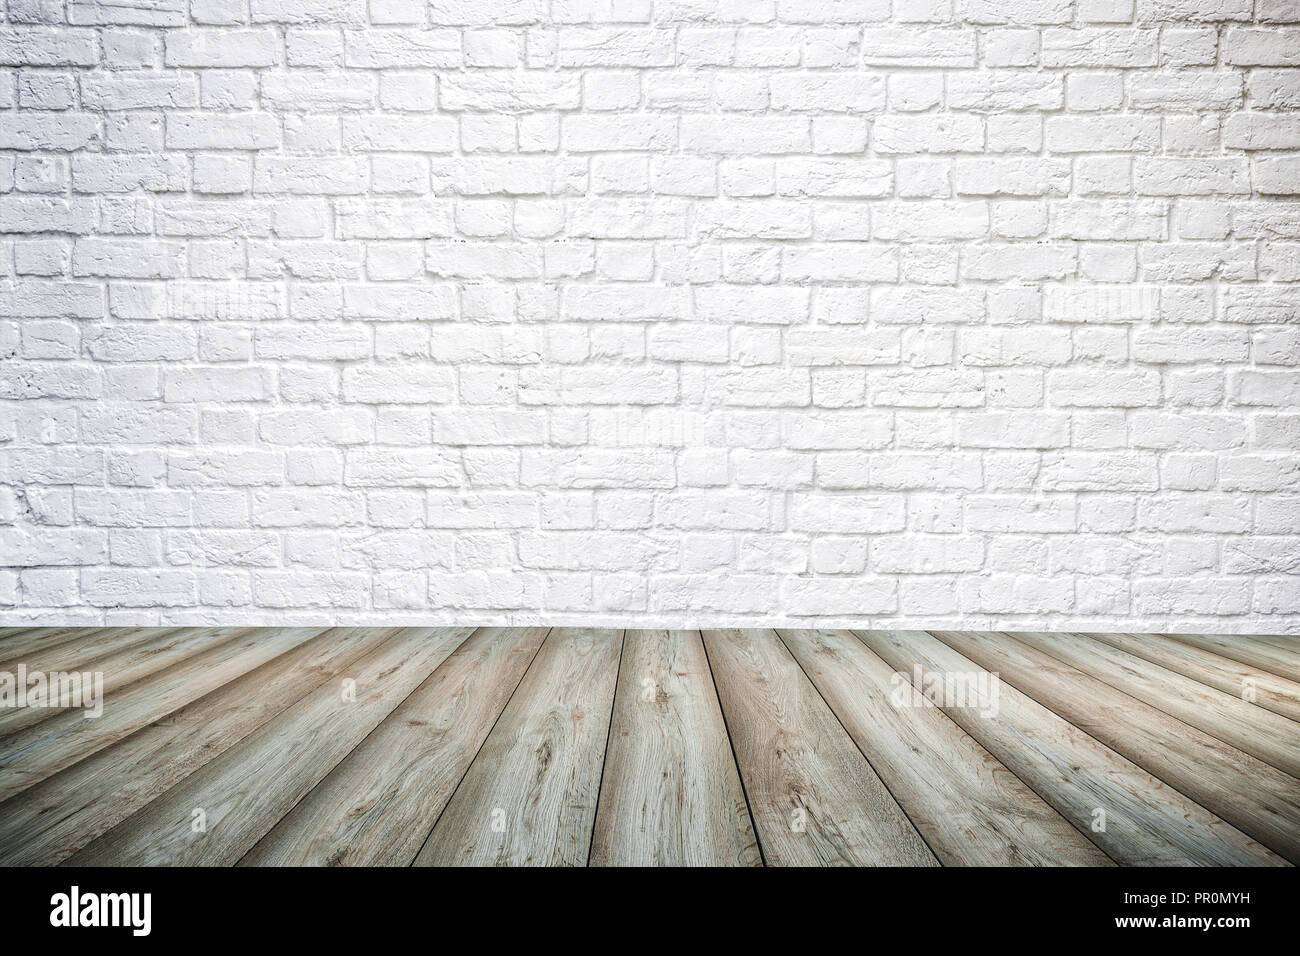 3d Interior Background With White Brick Wall And Wooden Floor Stock Photo Alamy